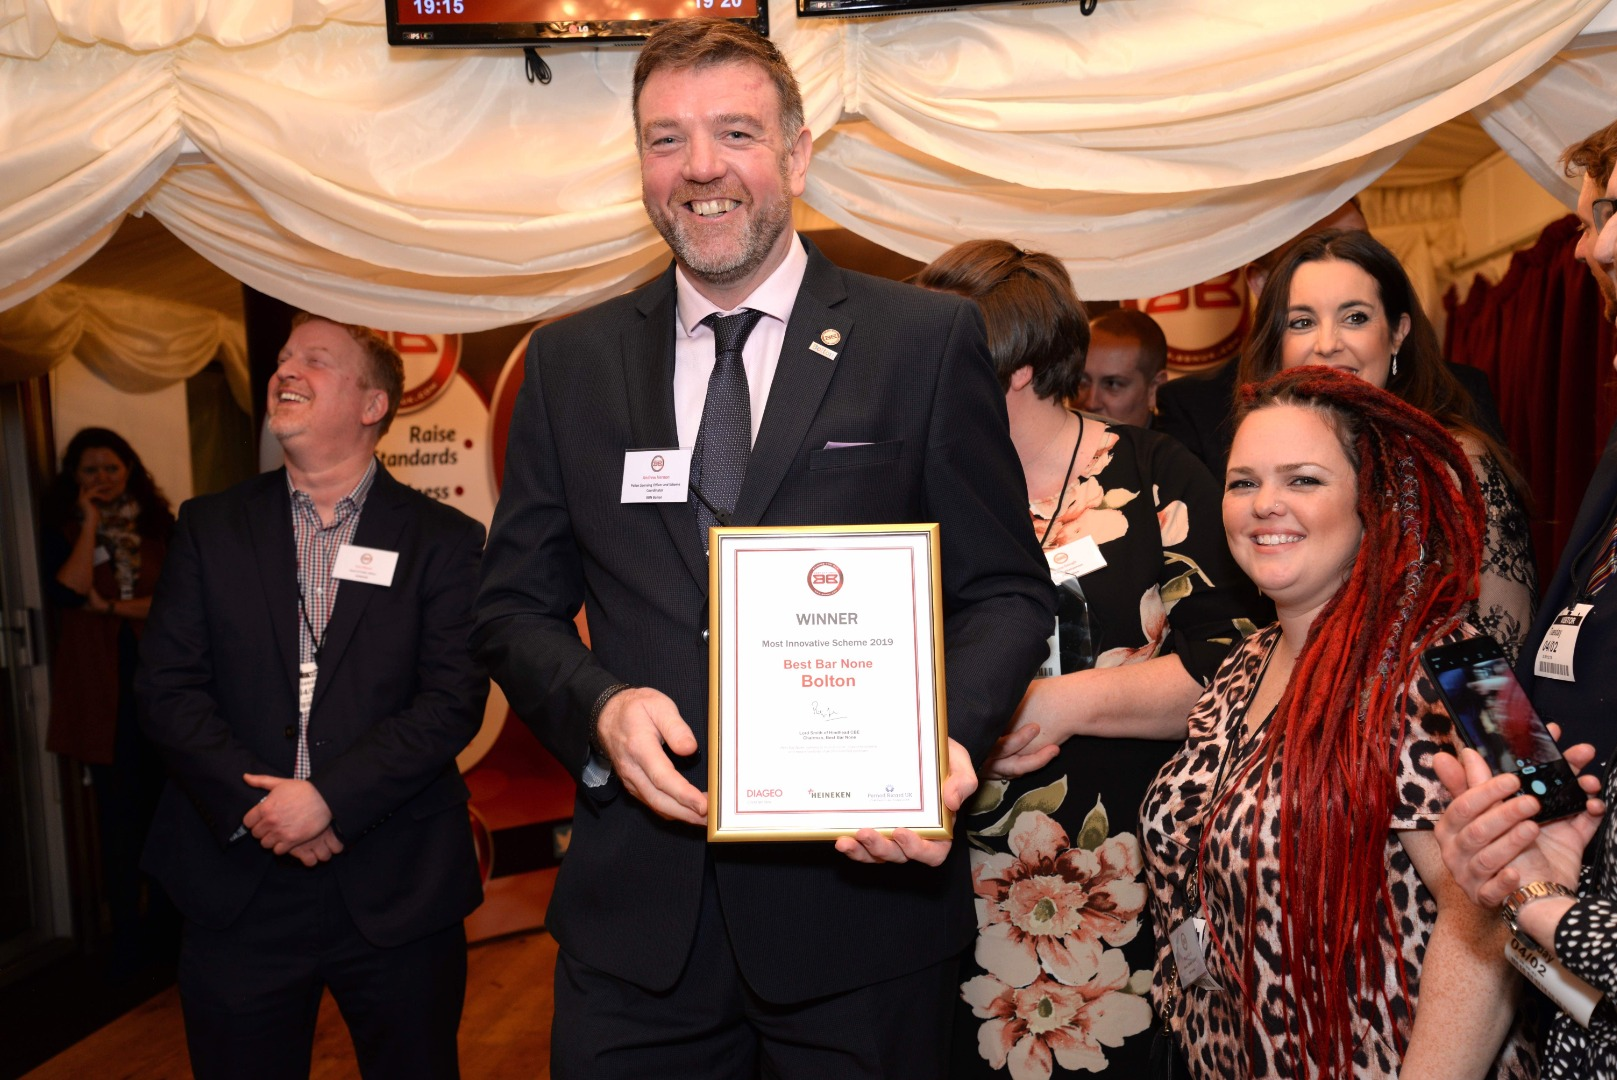 Bolton wins 'Most Innovative Scheme' in National Best Bar None Awards